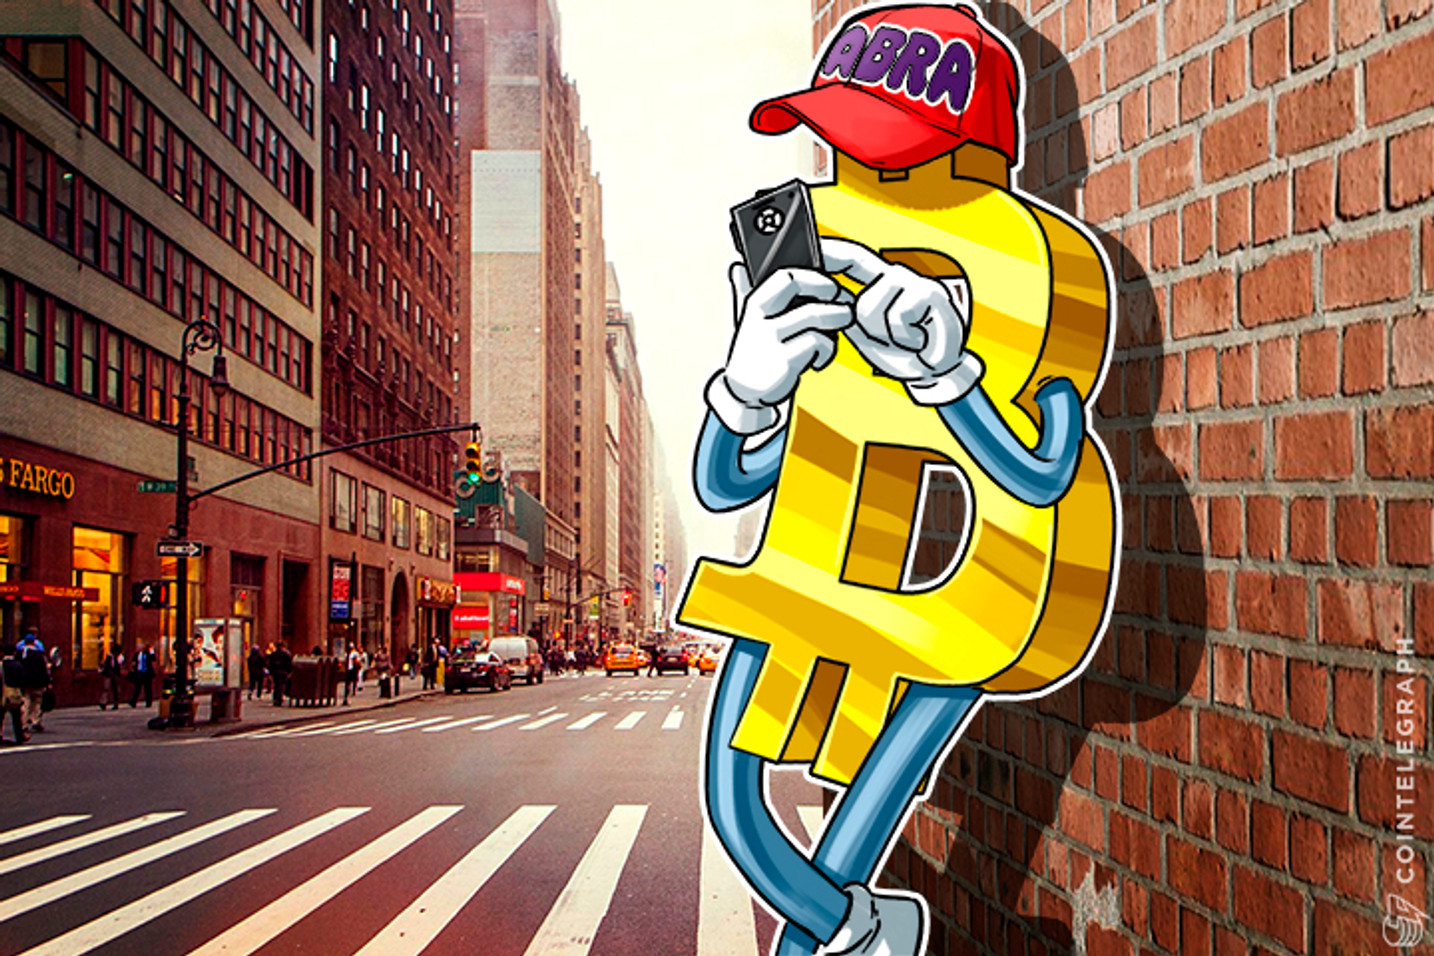 Backed by Major VC Firms the Bitcoin Remittance App Abra is set to Launch Next Month